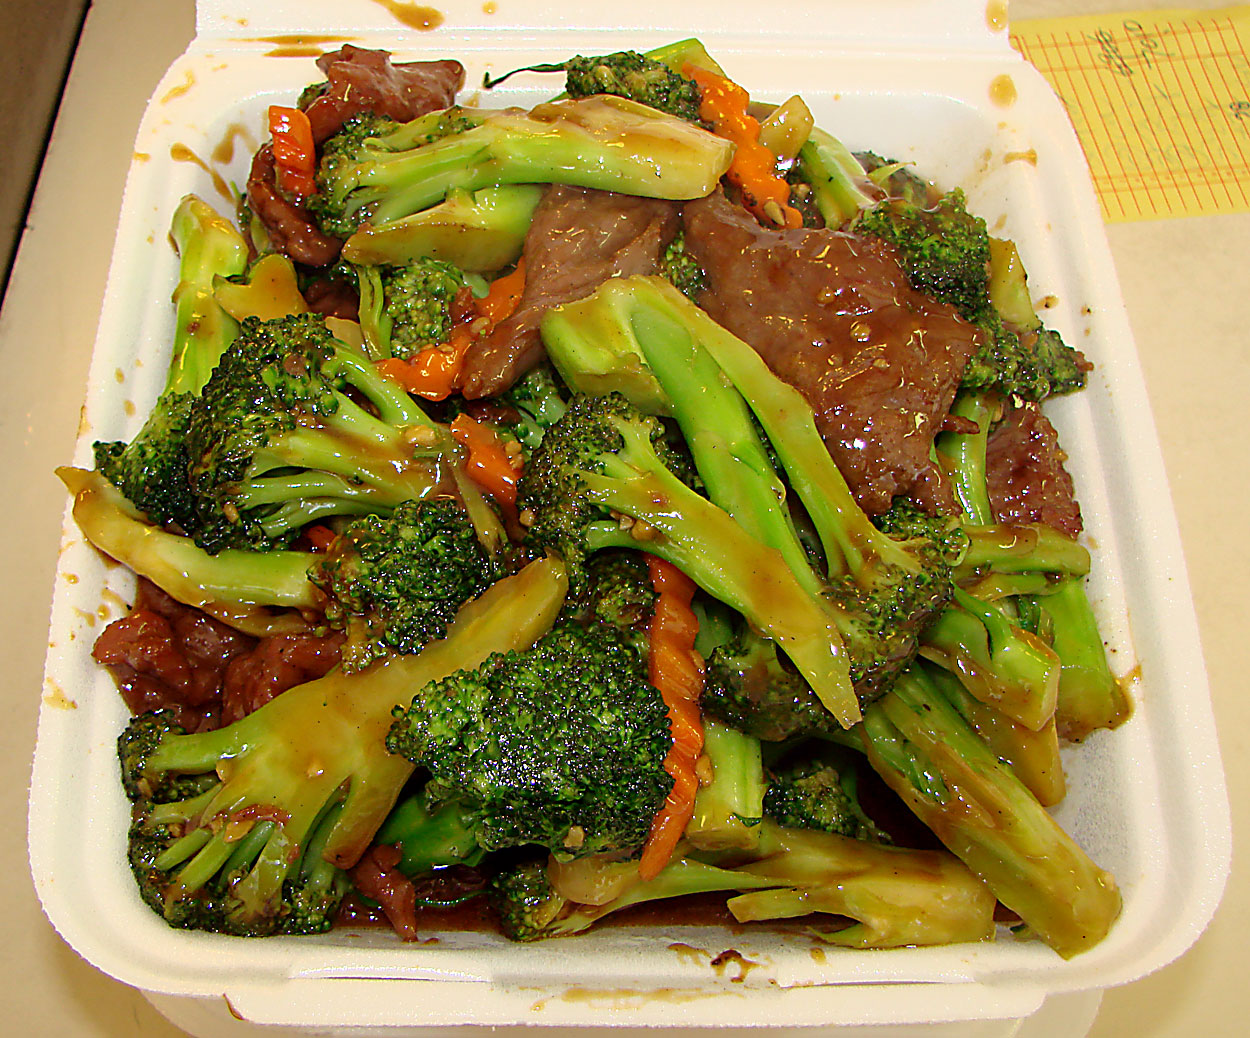 Moiliili eats golden dynasty chinese restaurant pomai test blog golden dynasty chinese restaurant beef with broccoli 675order two orders shown forumfinder Images